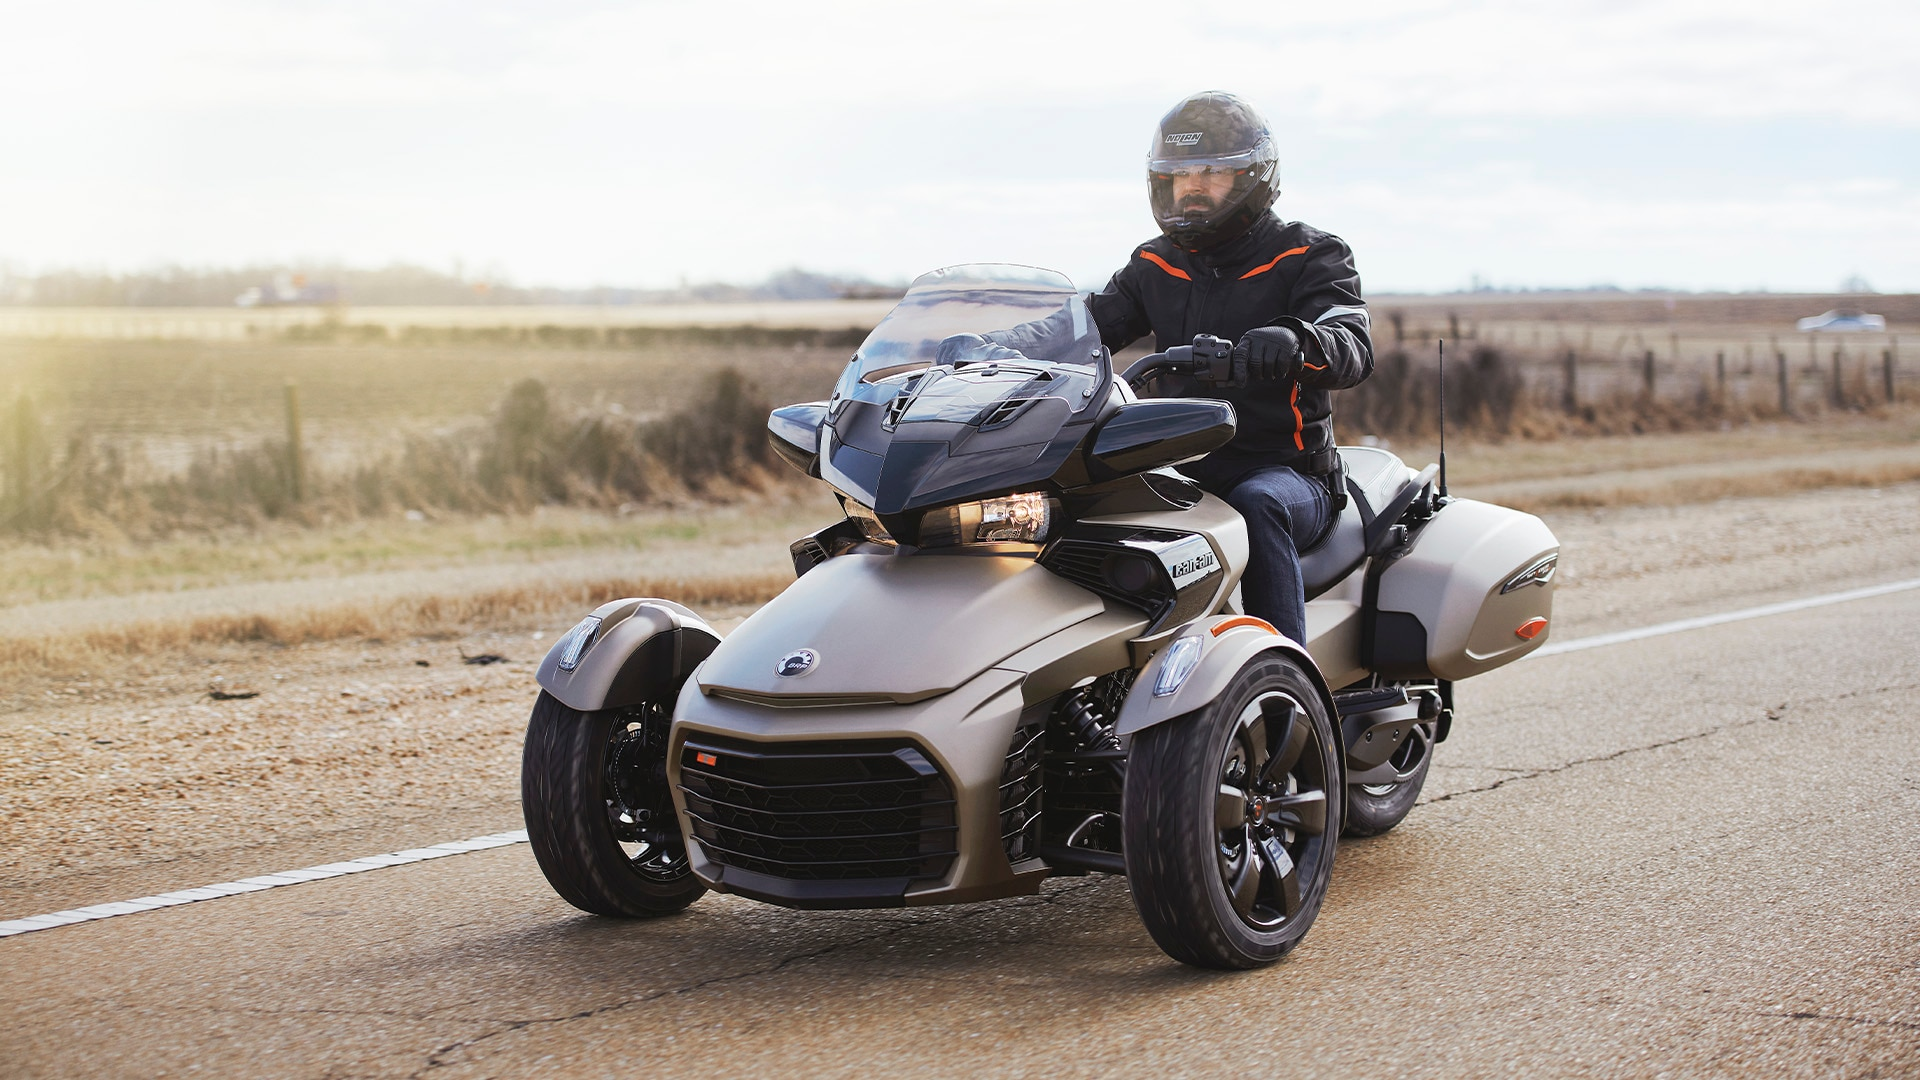 Clint Carter qui conduit sur son véhicule Can-Am Spyder F3-T